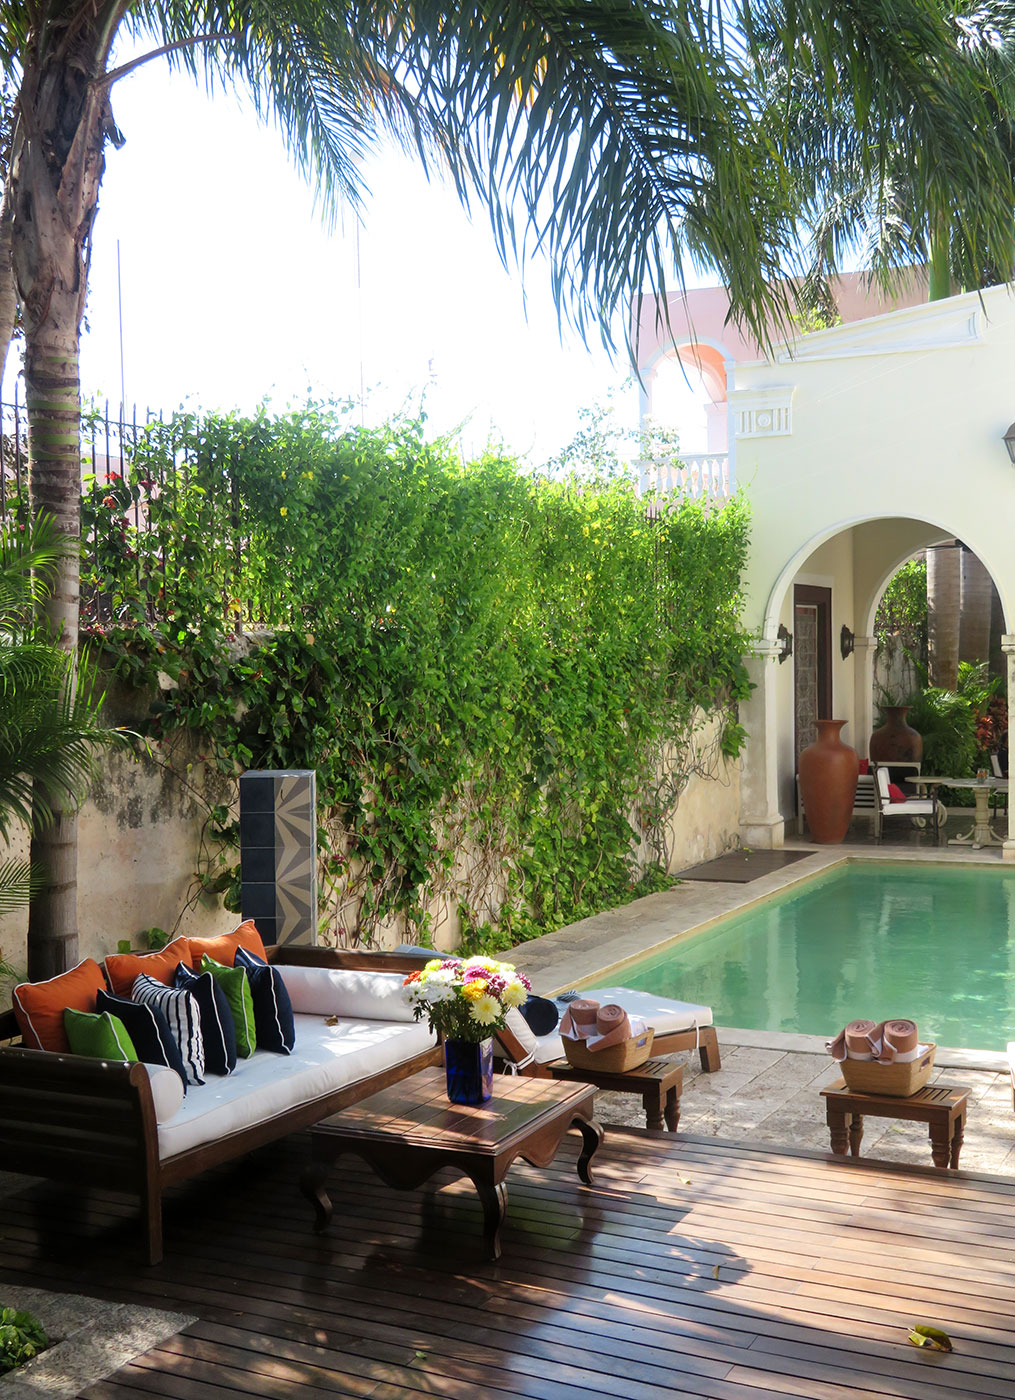 The pool at Casa Lecanda in Mérida, Mexico - Photo by Hideaway Report editor